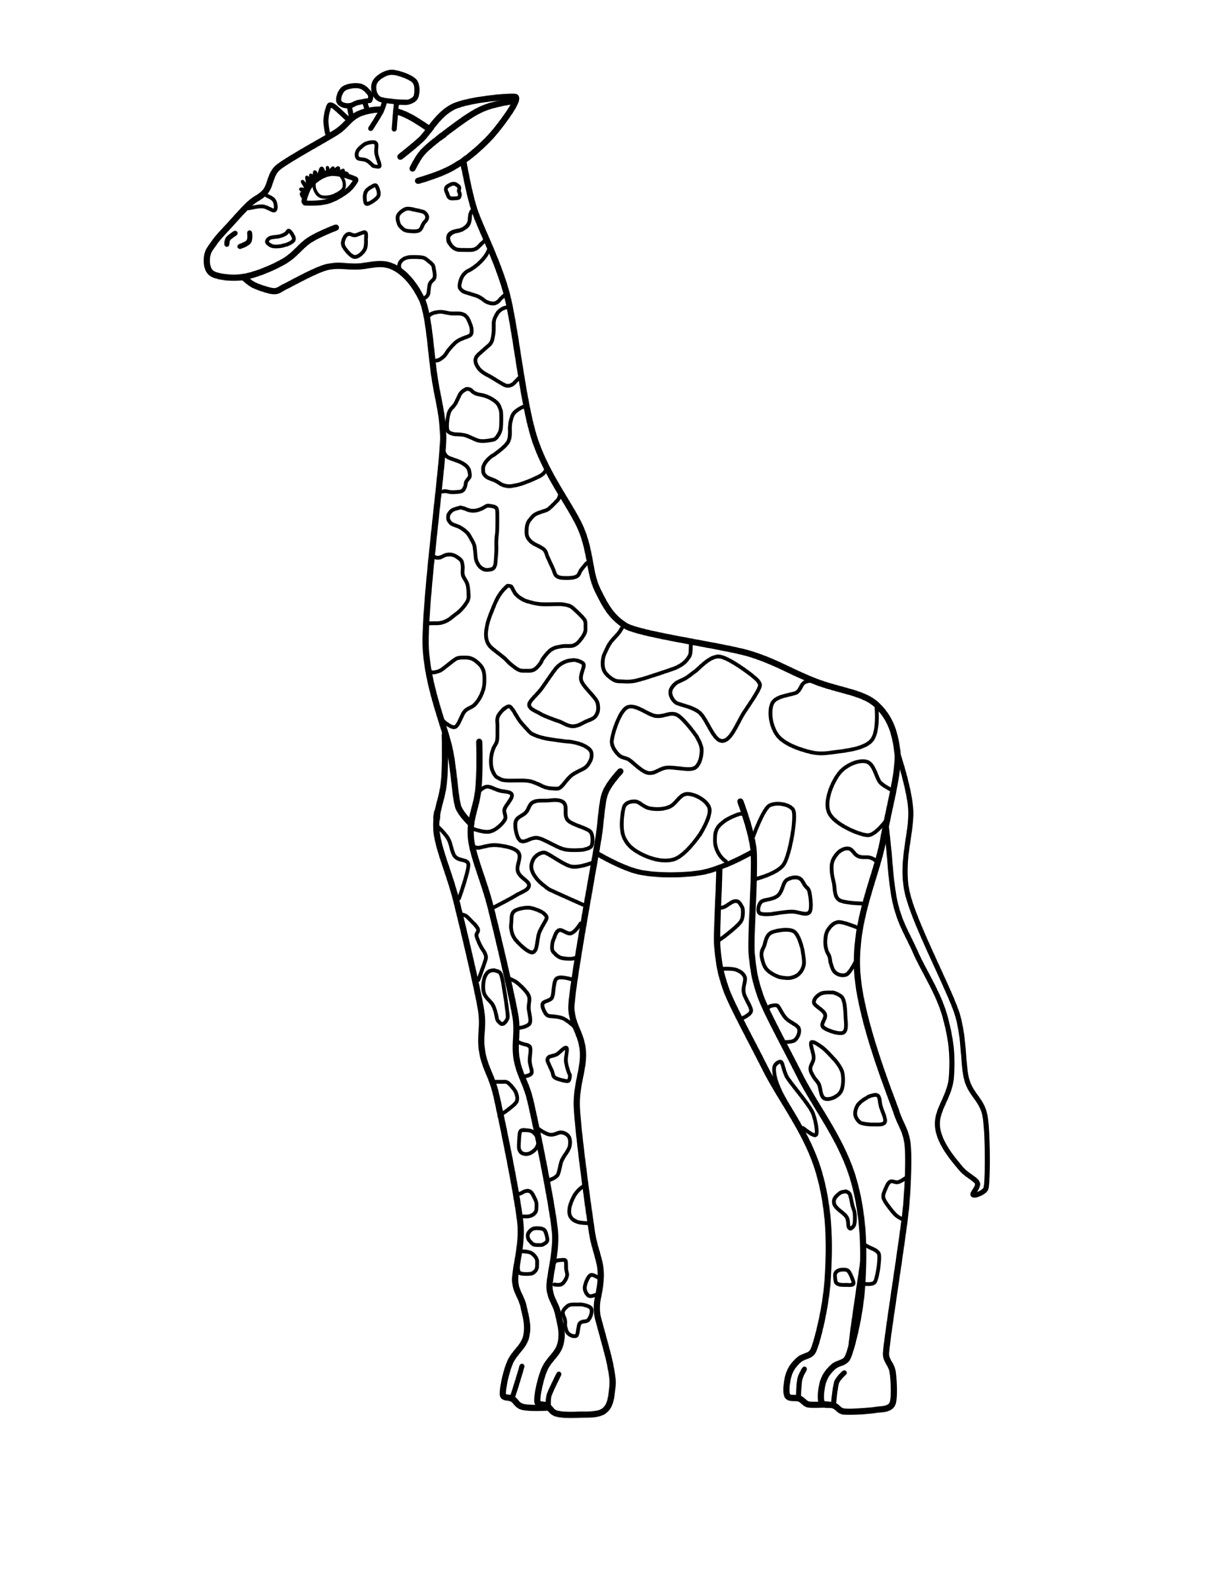 Free Printable Giraffe Coloring Pages For Kids (With